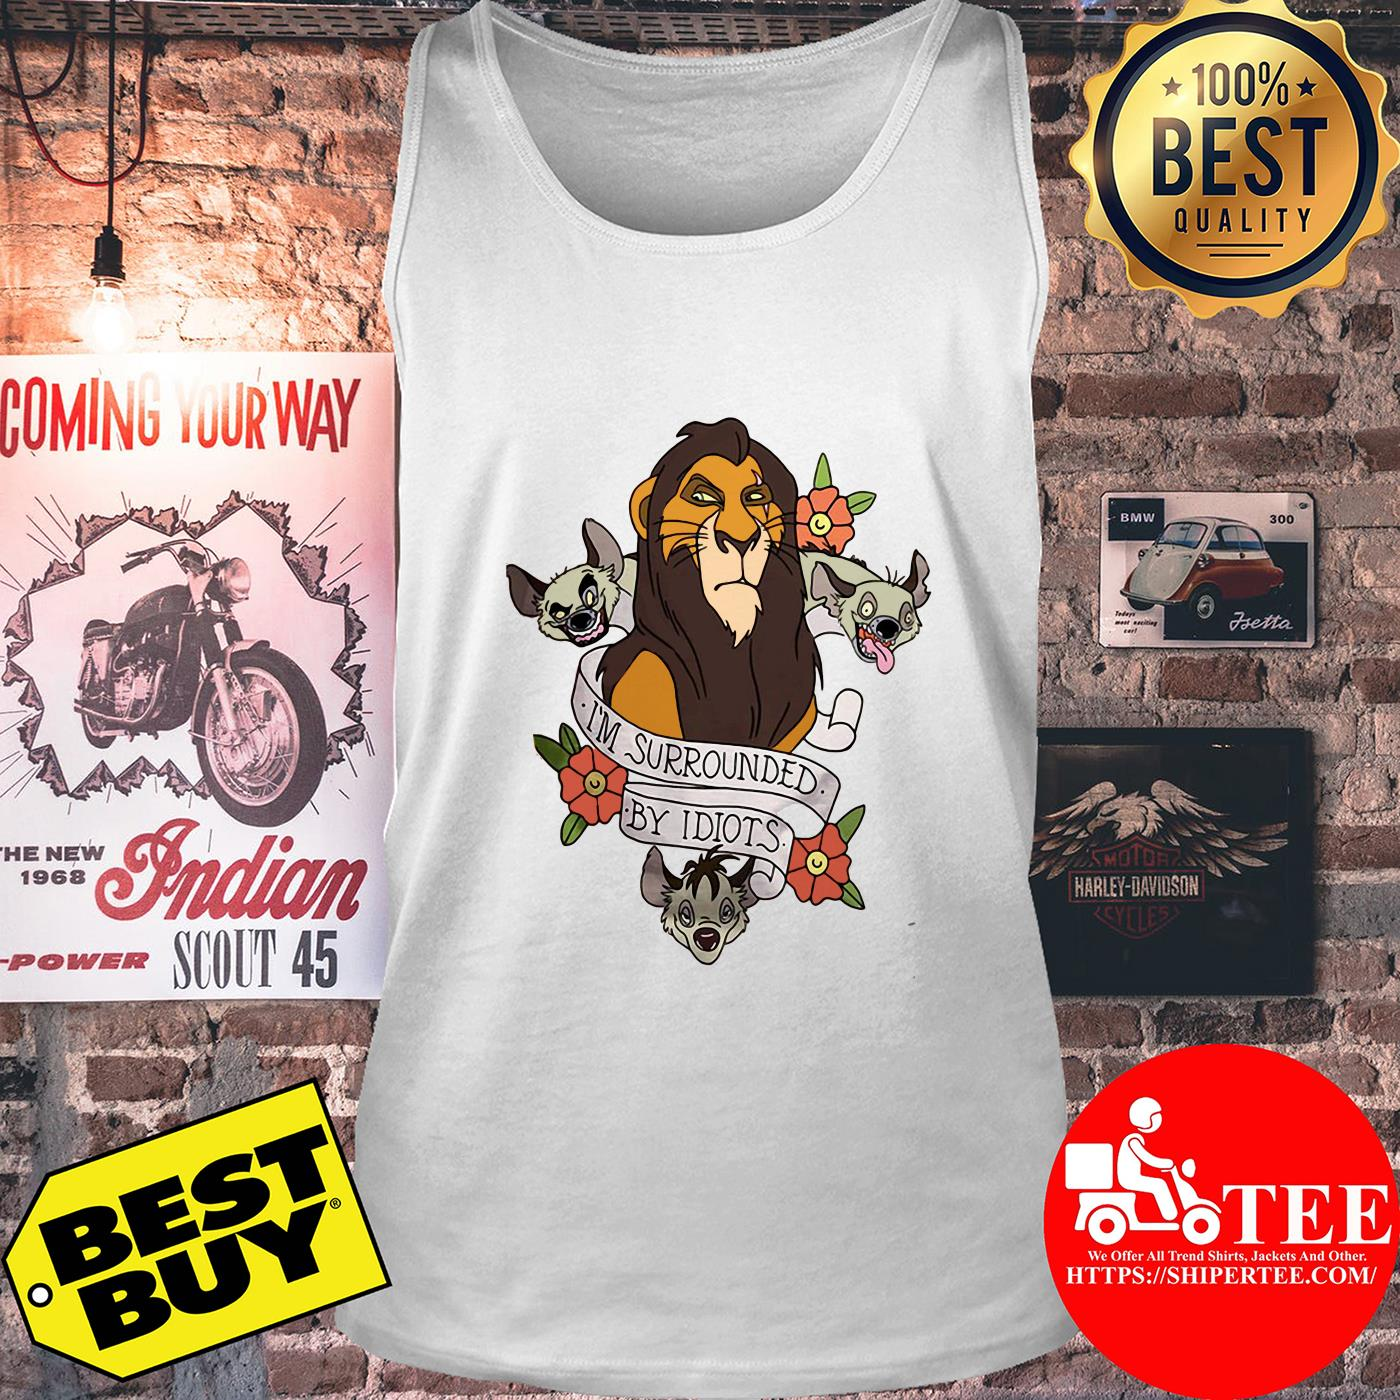 Disney The Lion King Scar Surrounded by Idiots Tattoo Flowers tank top